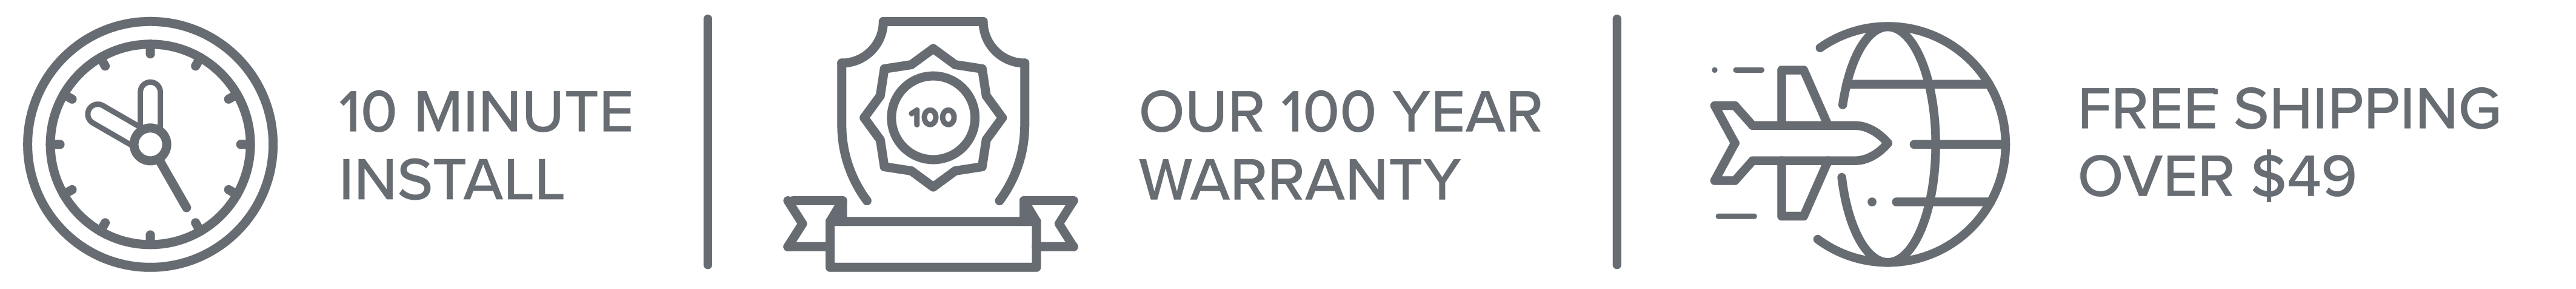 10 Minute Install, Our 100 Year Warranty and Free Shipping on orders over $49